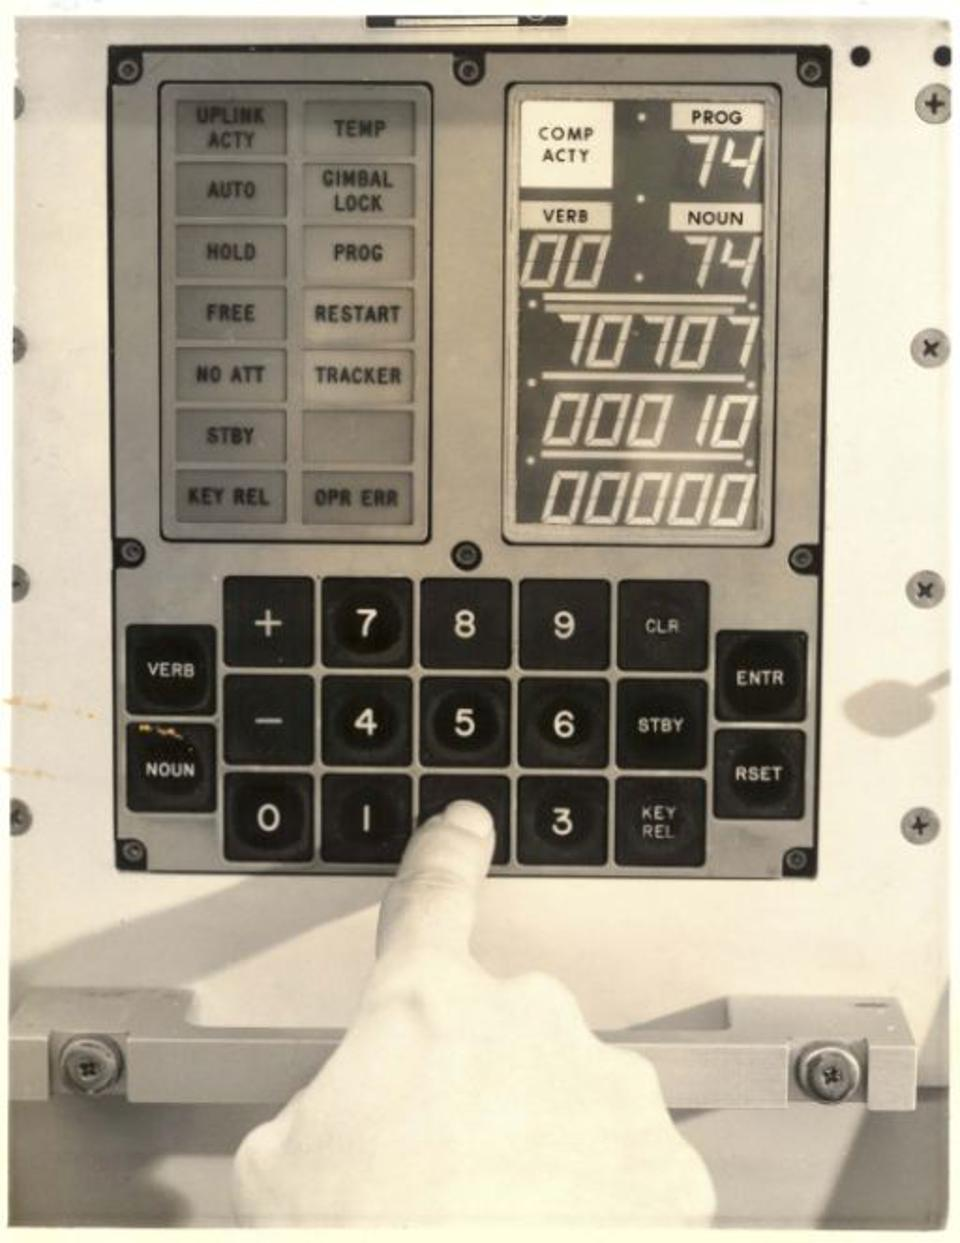 The interface for the Apollo Guidance computers